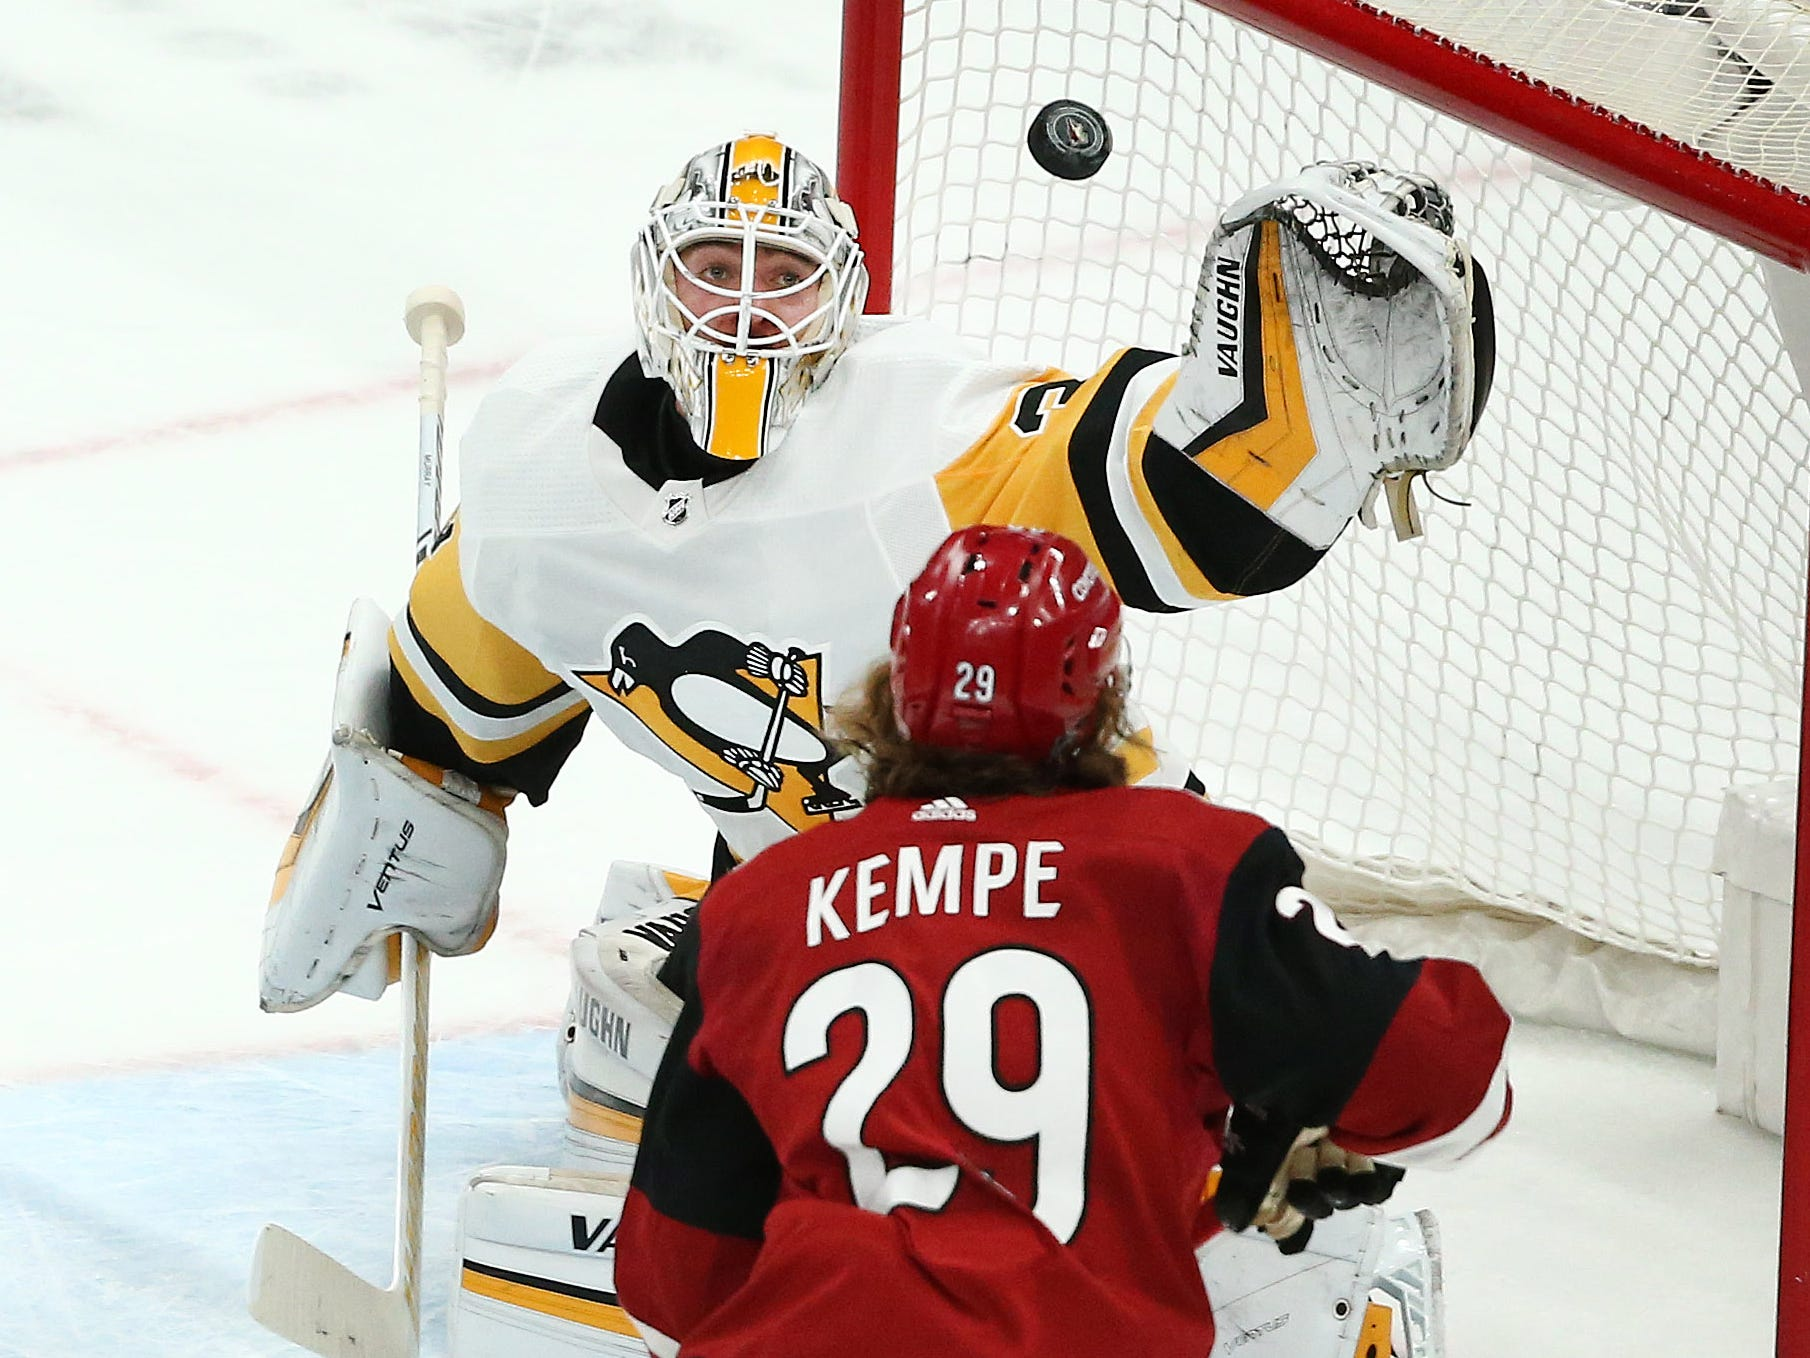 Pittsburgh Penguins goalie Matt Murray catches the shot by the Arizona Coyotes in the first period on Jan. 18 at Gila River Arena.